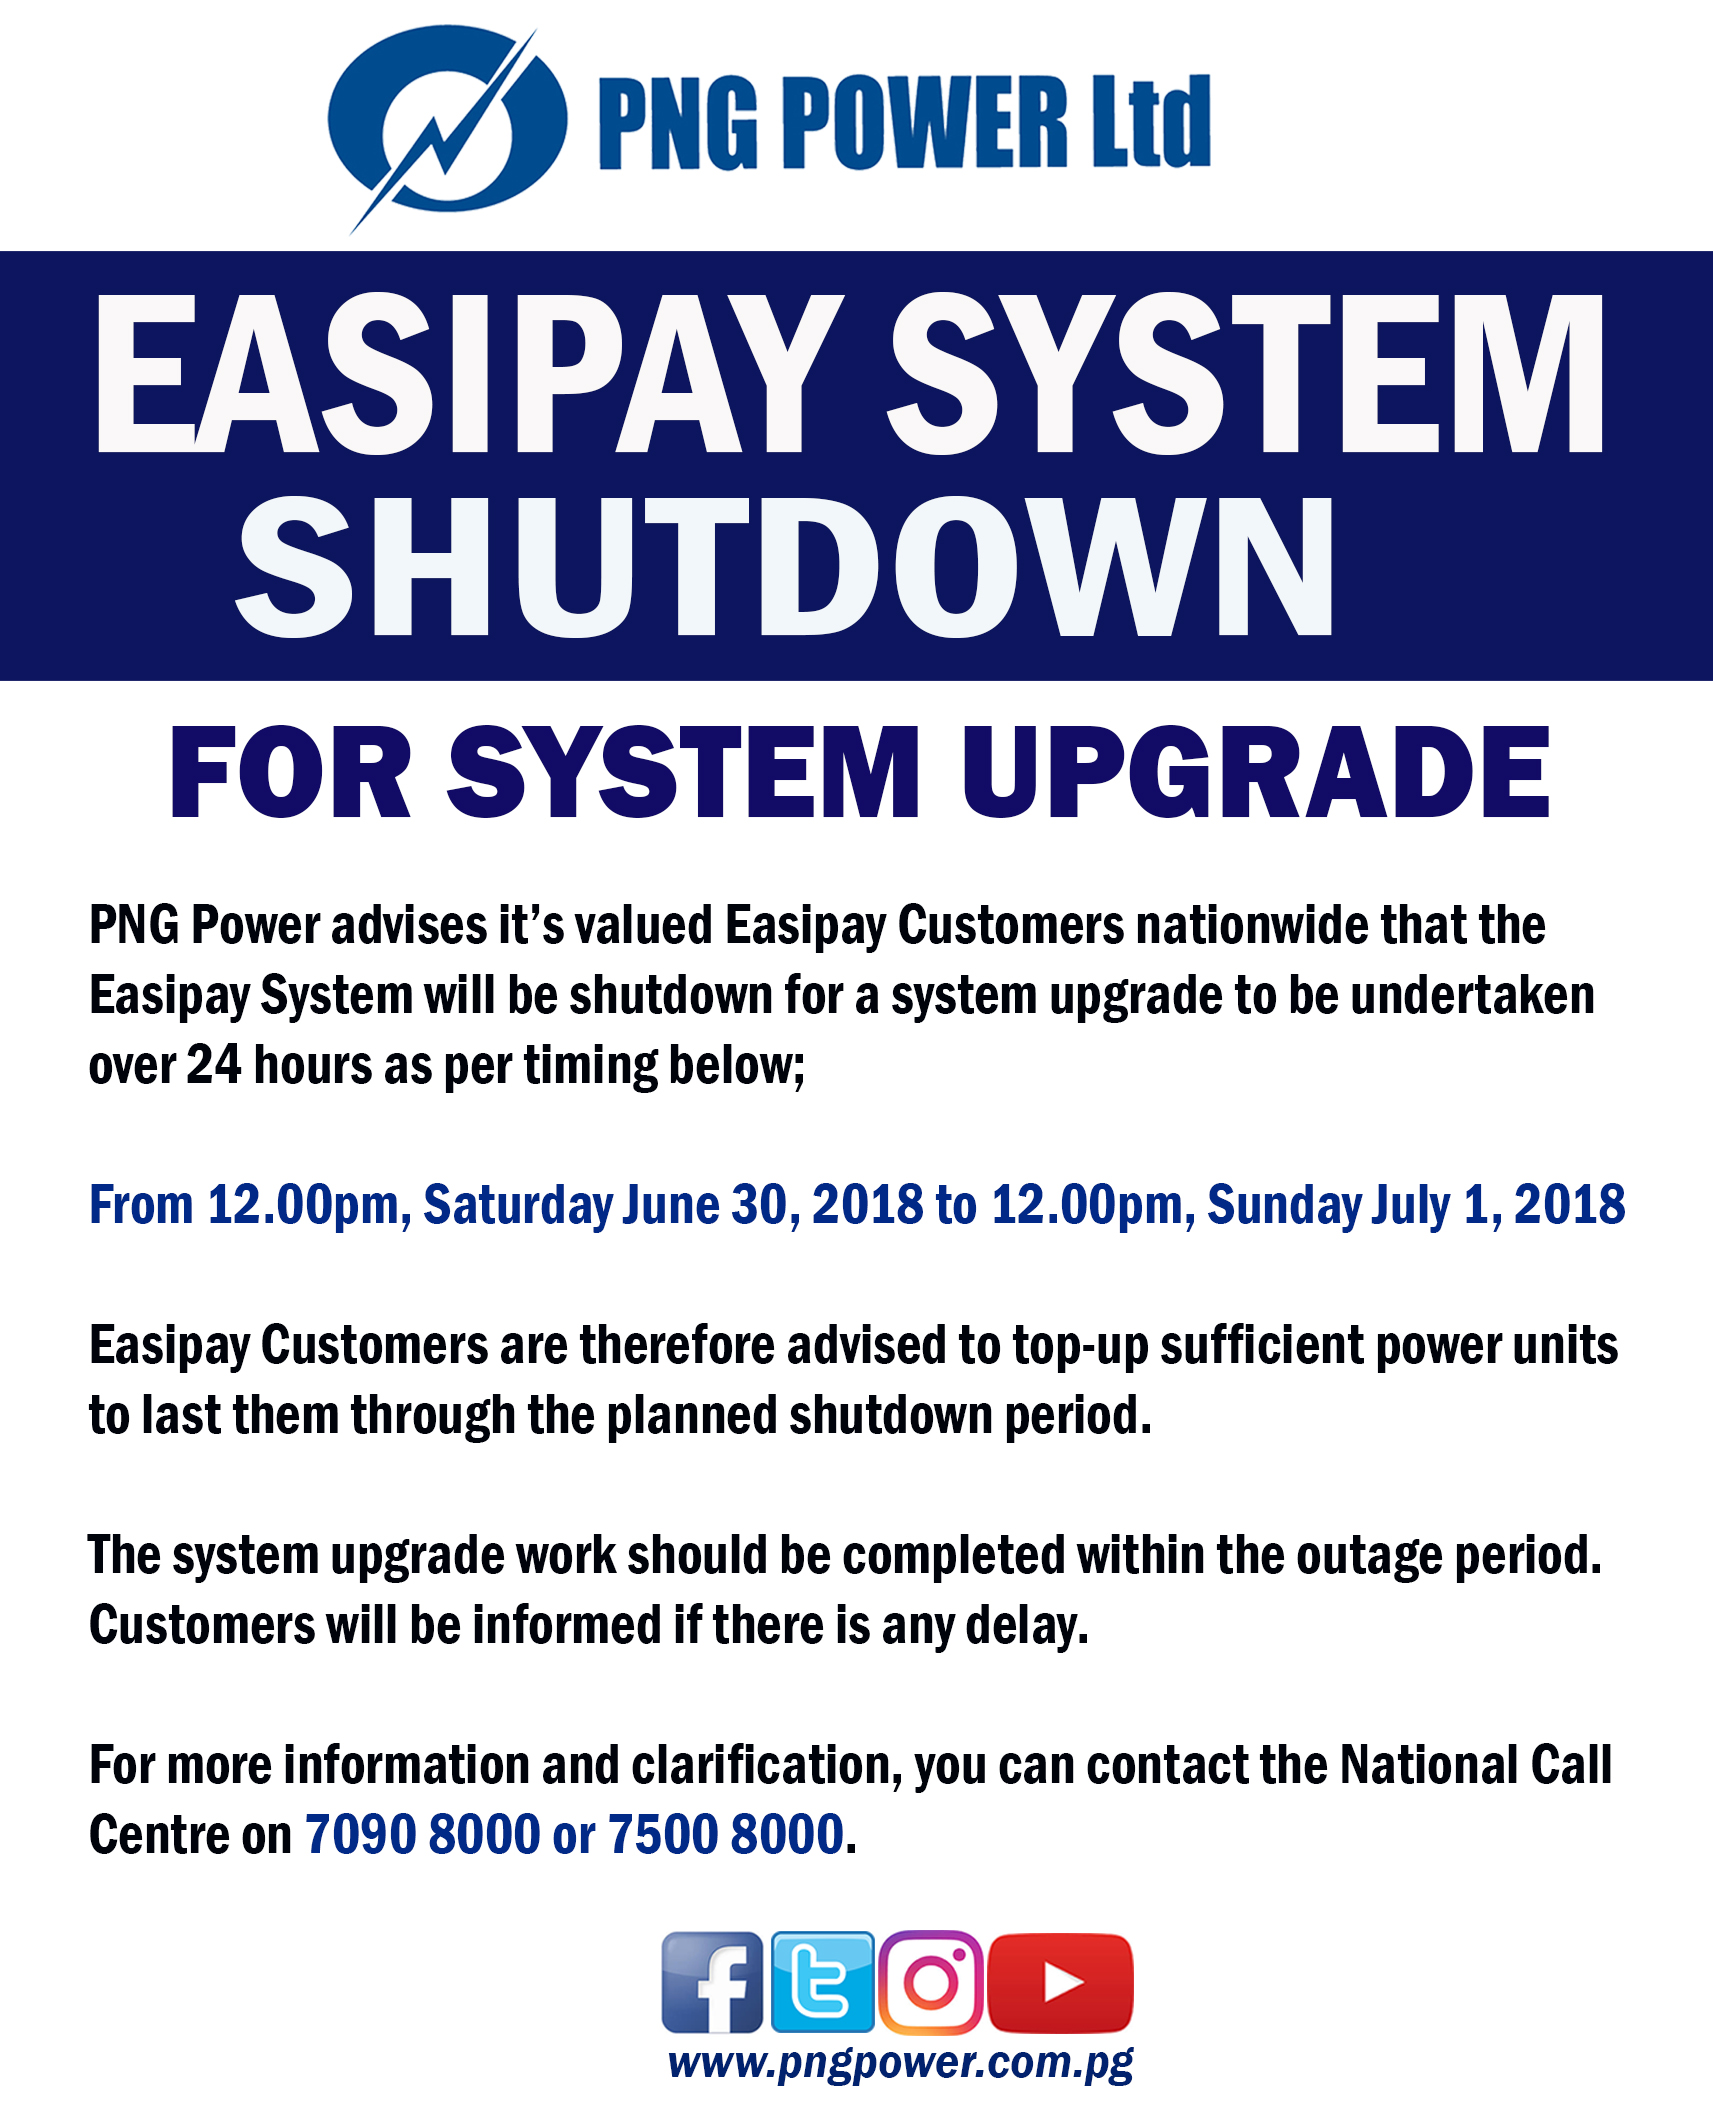 Easipay System Shutdown for Upgrade work on Saturday June 30